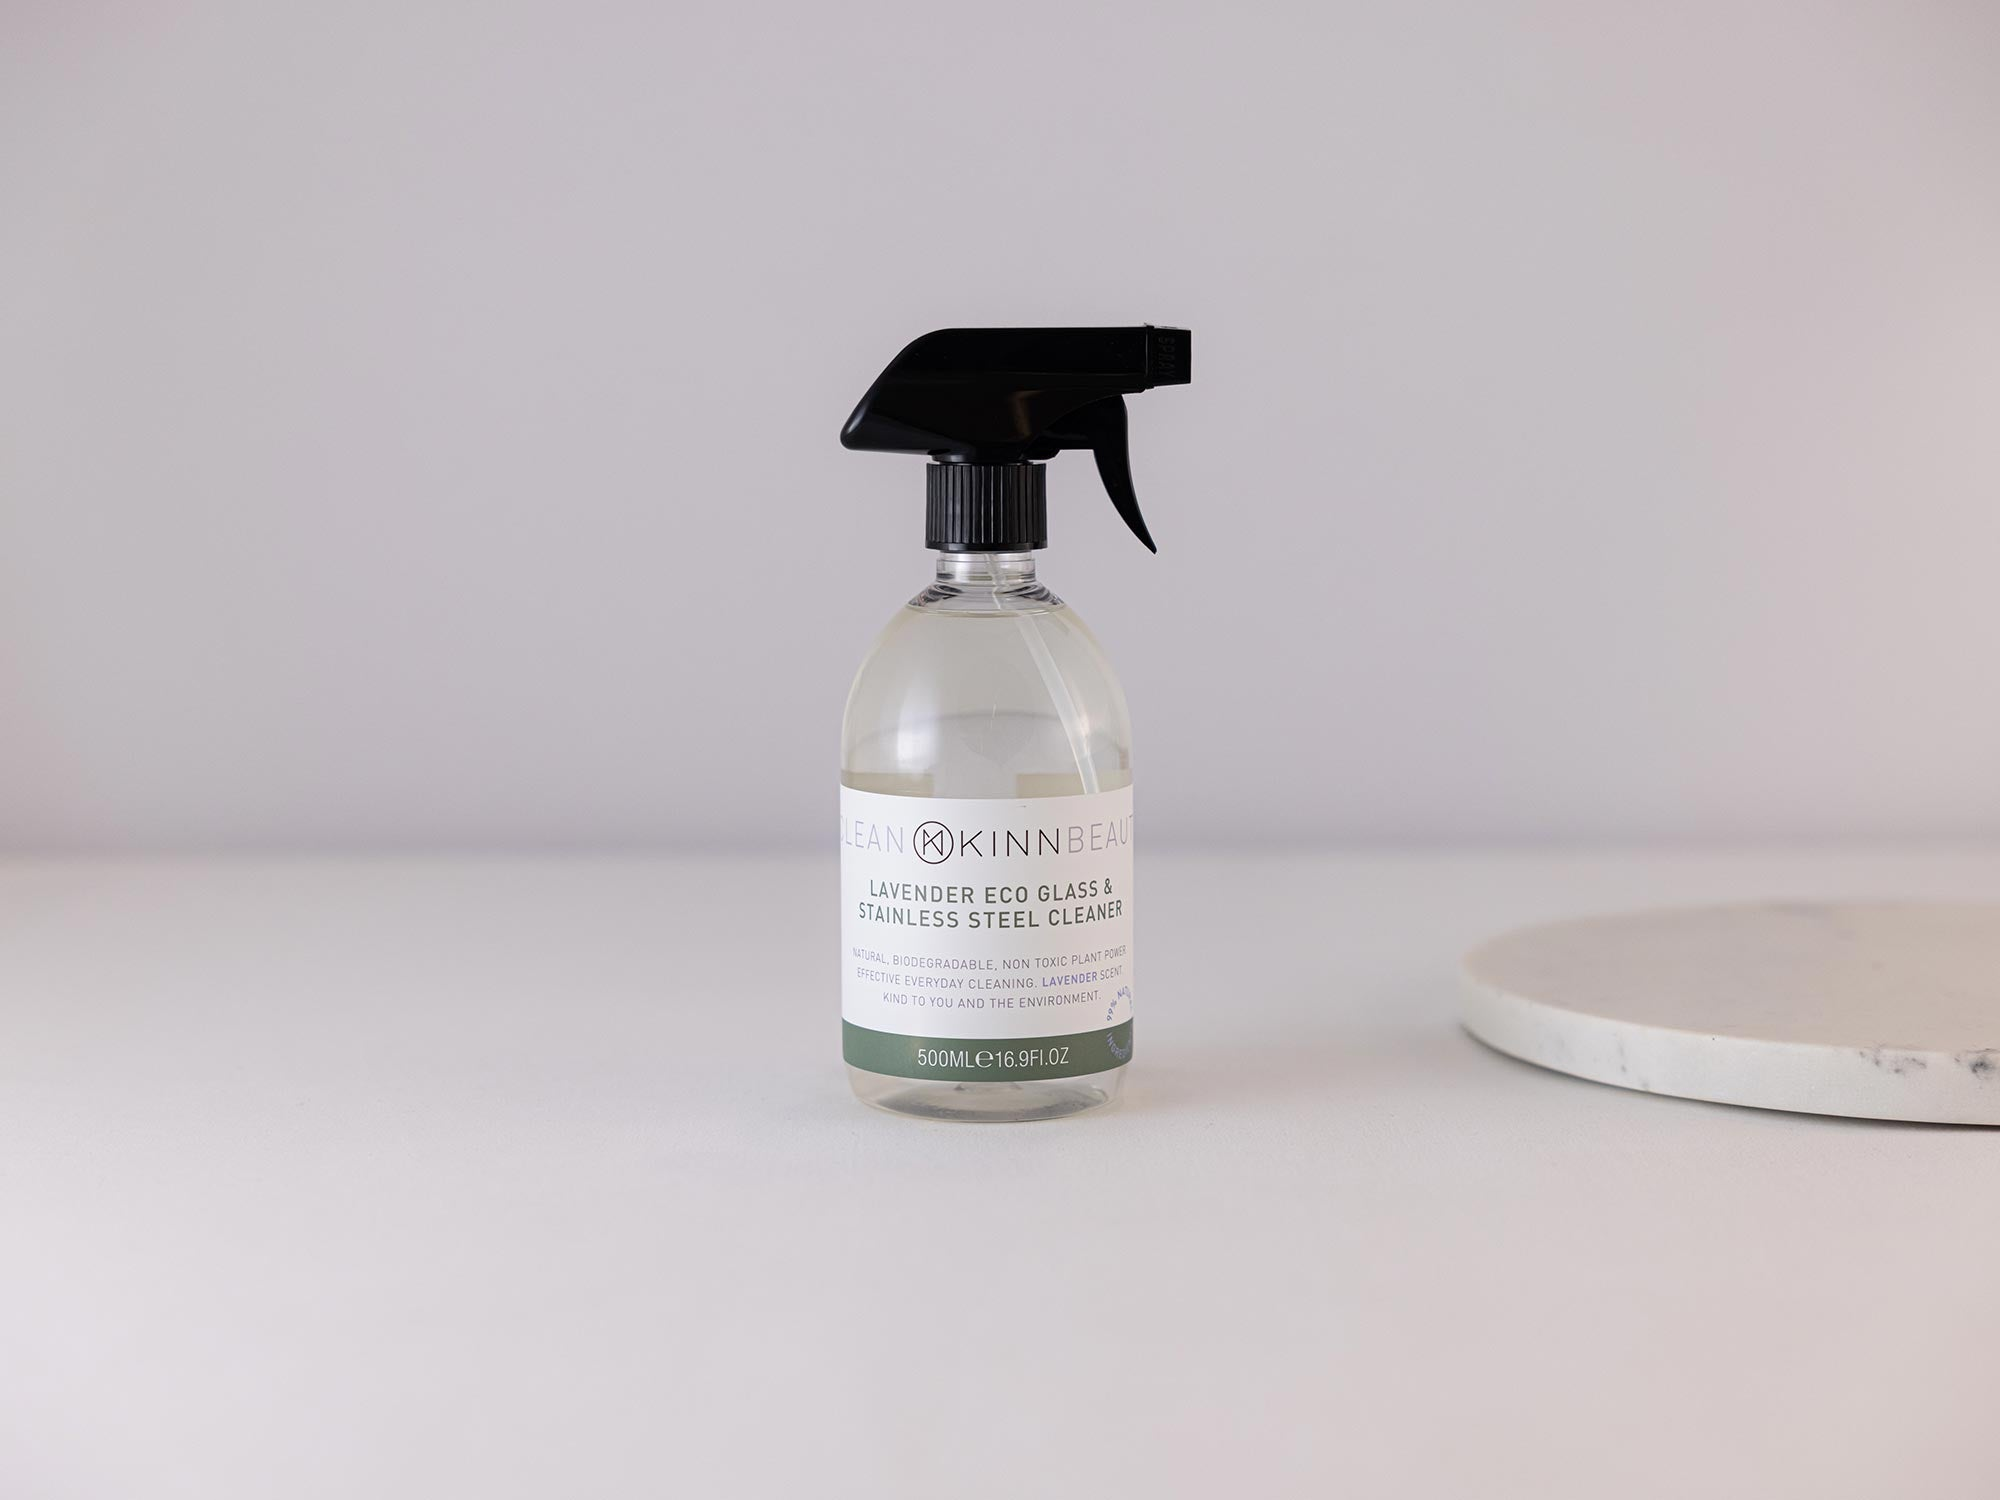 Eco Glass & Stainless Steel Cleaner